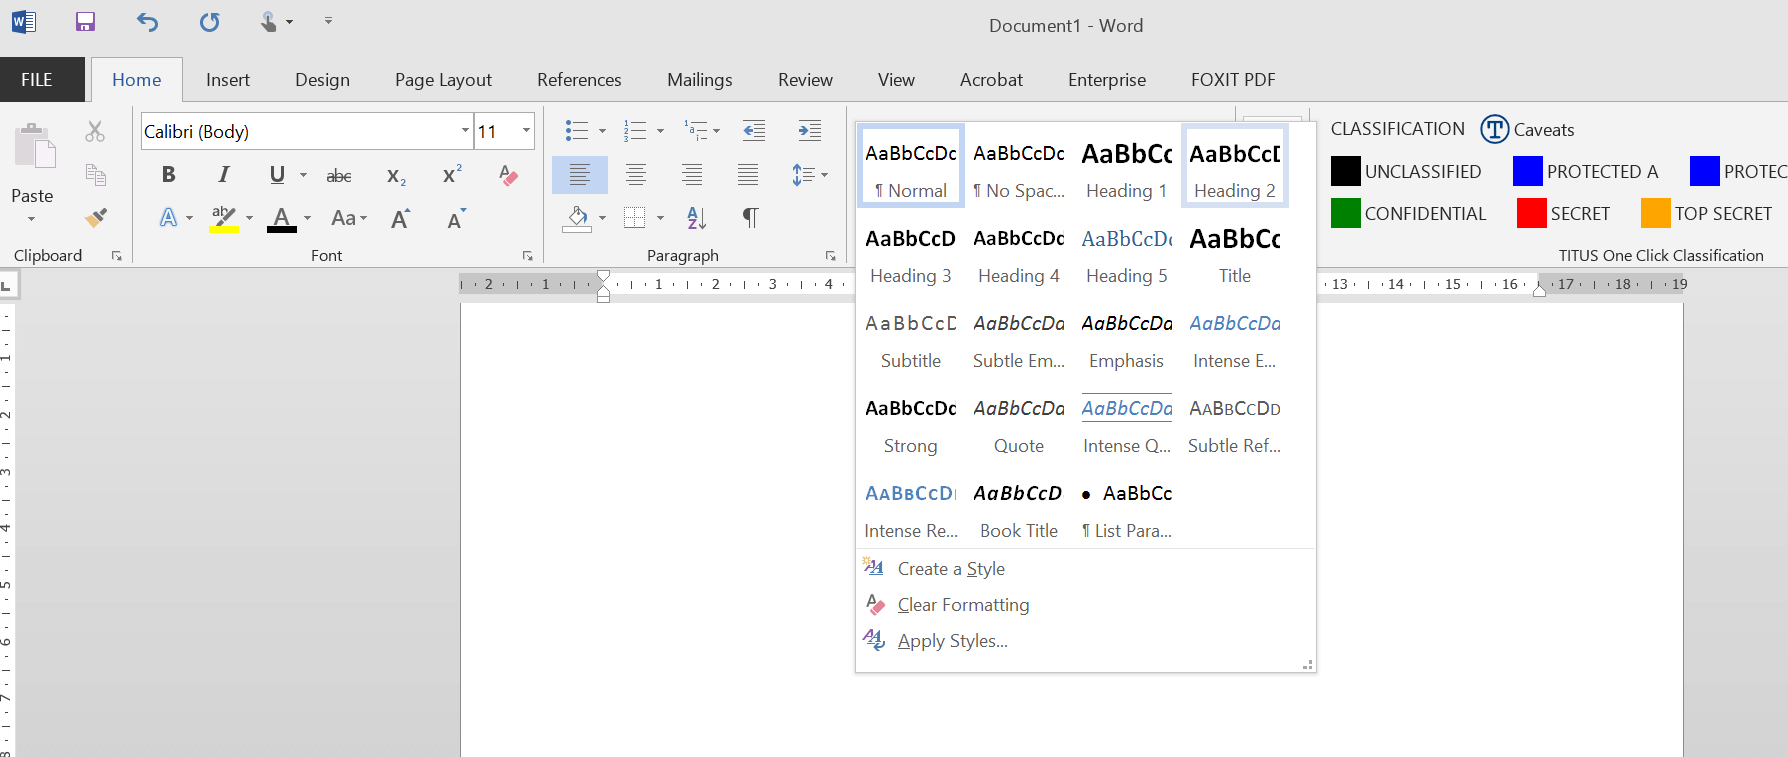 A screenshot of Microsoft Word 2013 showing the expanded Styles panel.